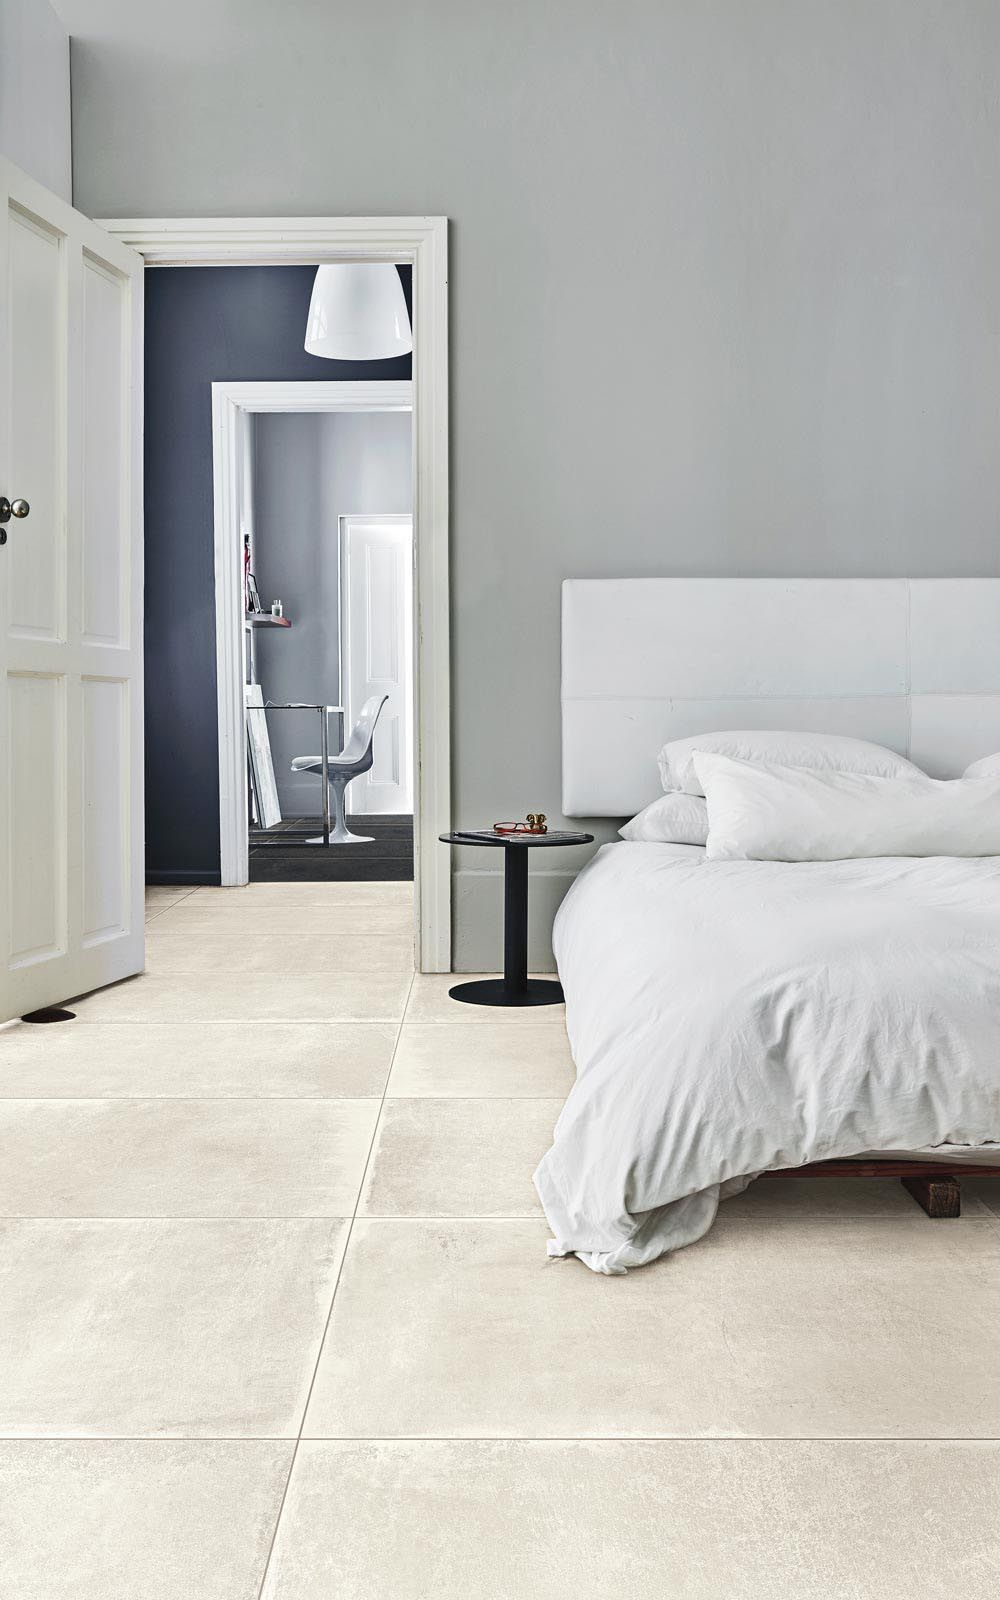 Walkway Scratched Concrete Look Porcelain Tiles Creative Materials Bedroom Floor Tiles Bedroom Design Bedroom Flooring